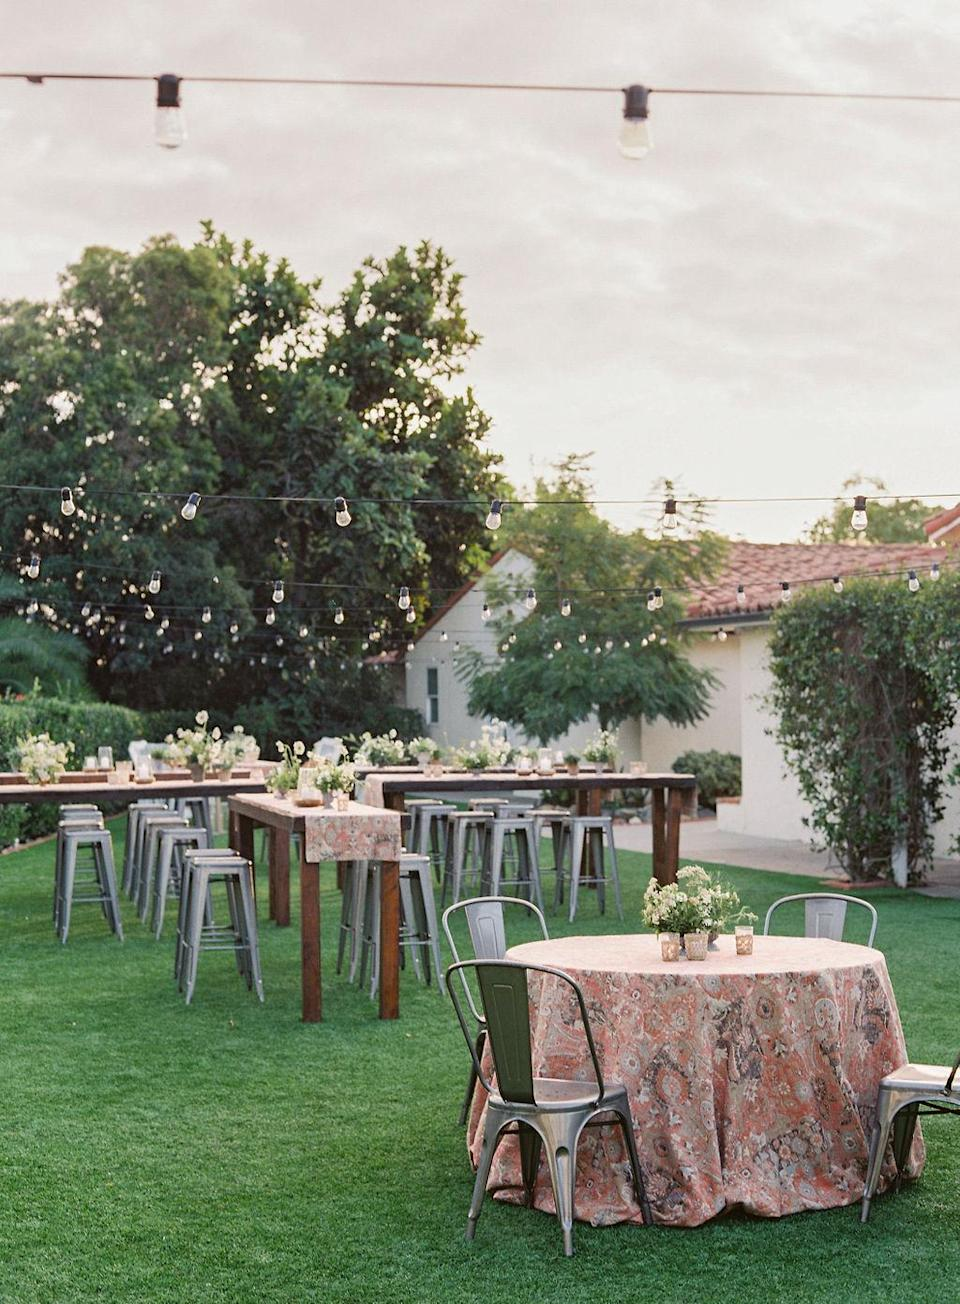 <p>The couple invited all of their guests to the welcome party, which took place after the rehearsal dinner on the hotel's lawn. Bar stool tables were flanked by two lounge areas with Adirondack chairs and clusters of lanterns. Guests mingled and enjoyed food stations, cocktails, and a table of desserts. </p>